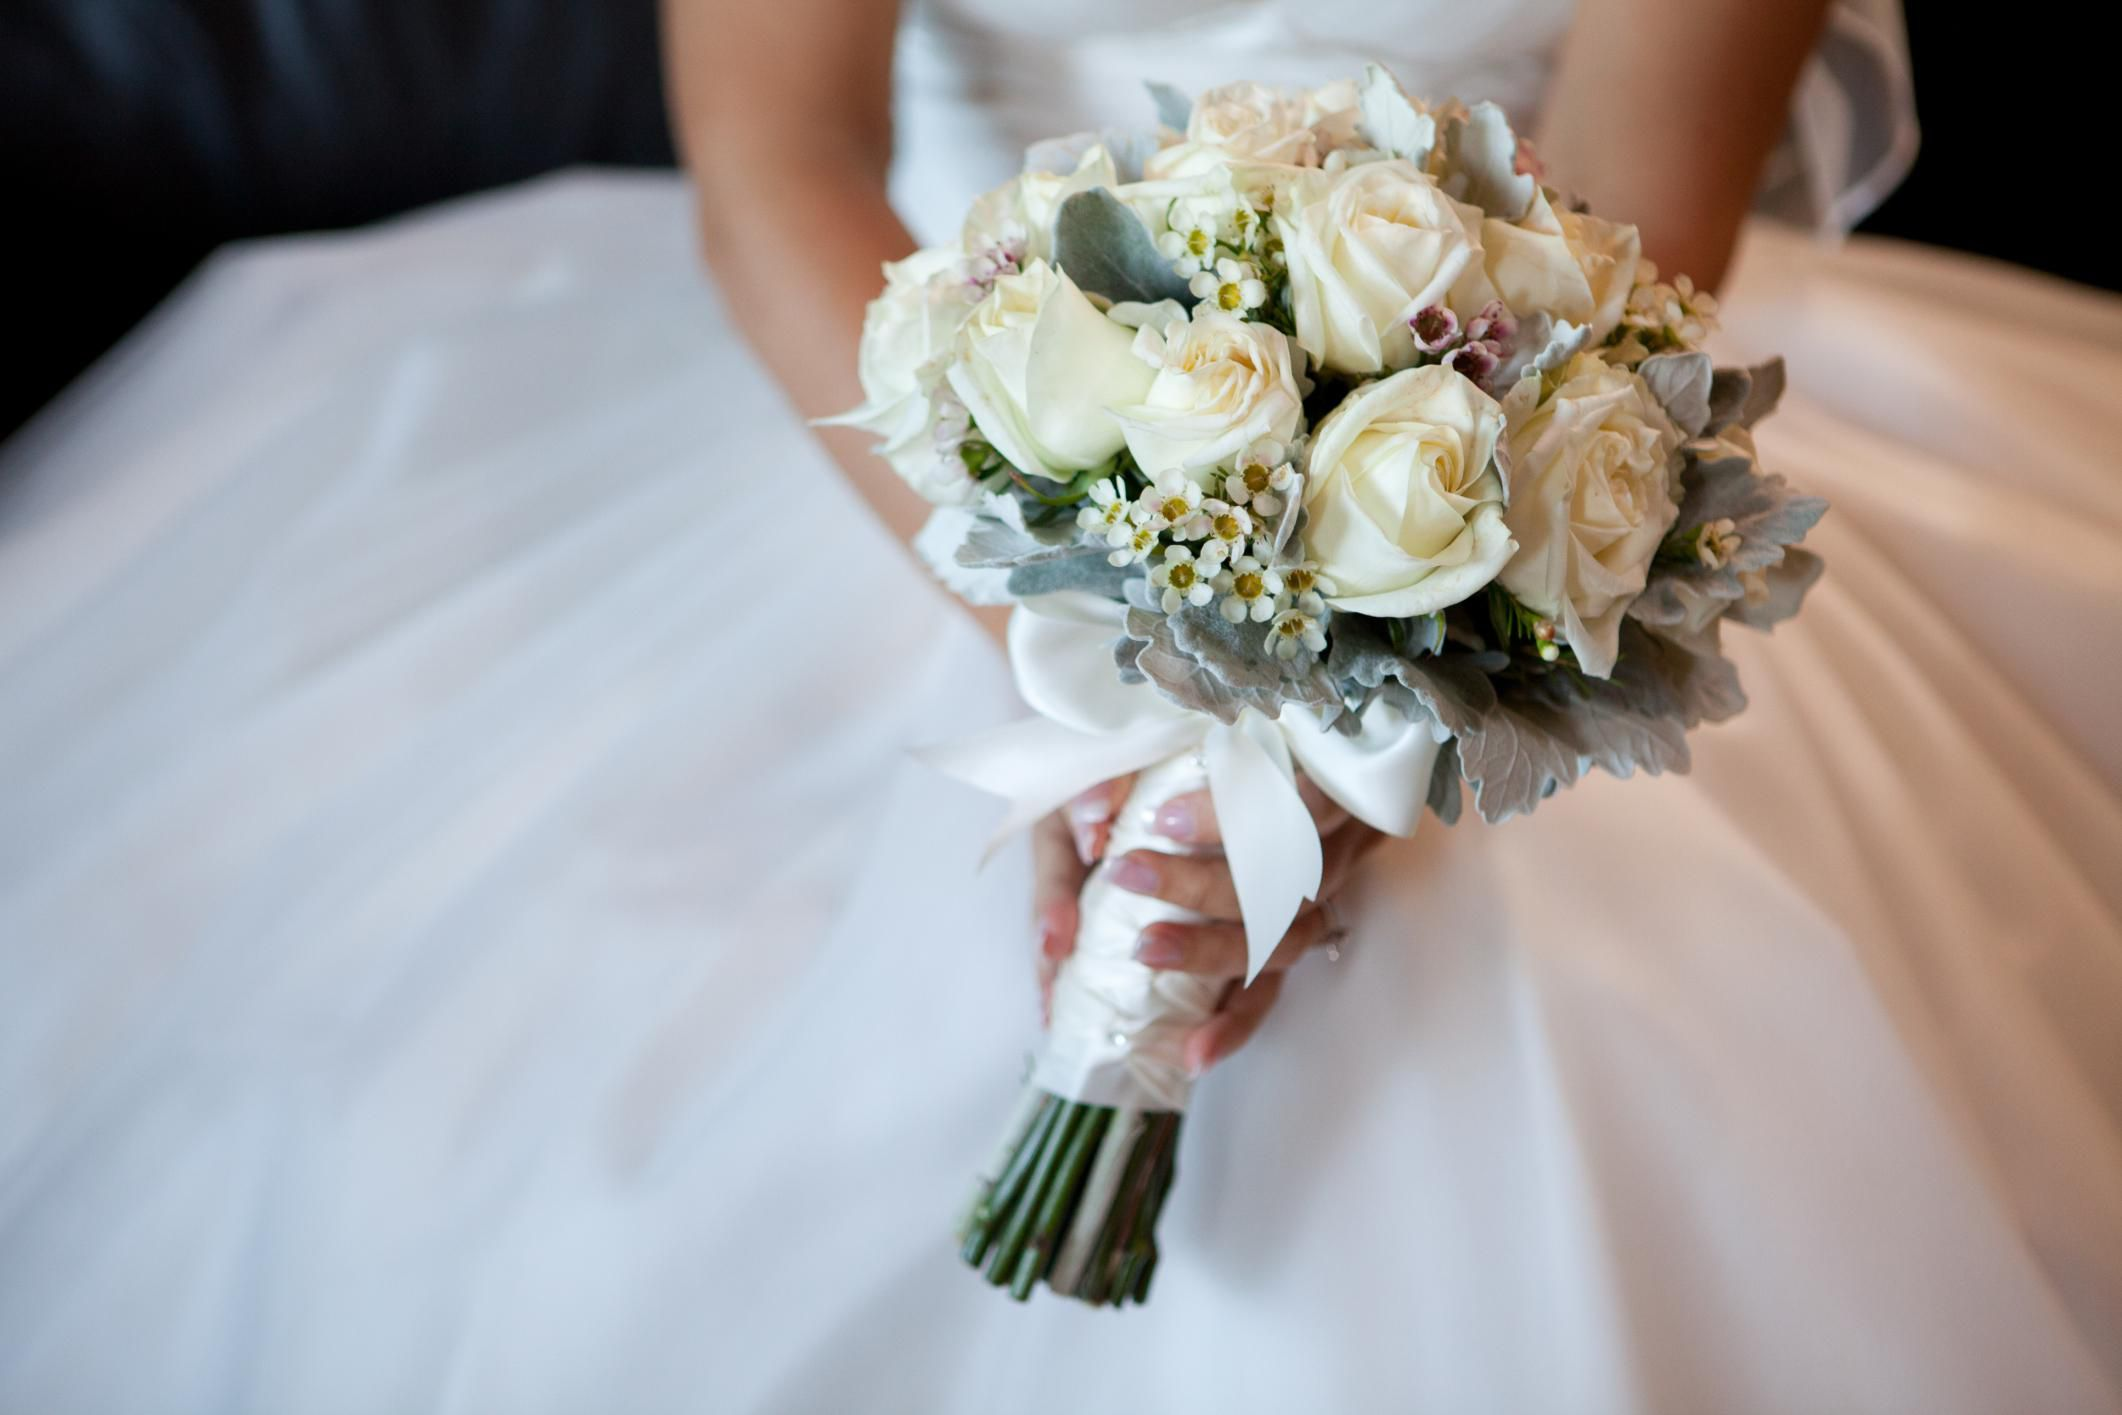 Guide To The Wedding Flowers You'll Need